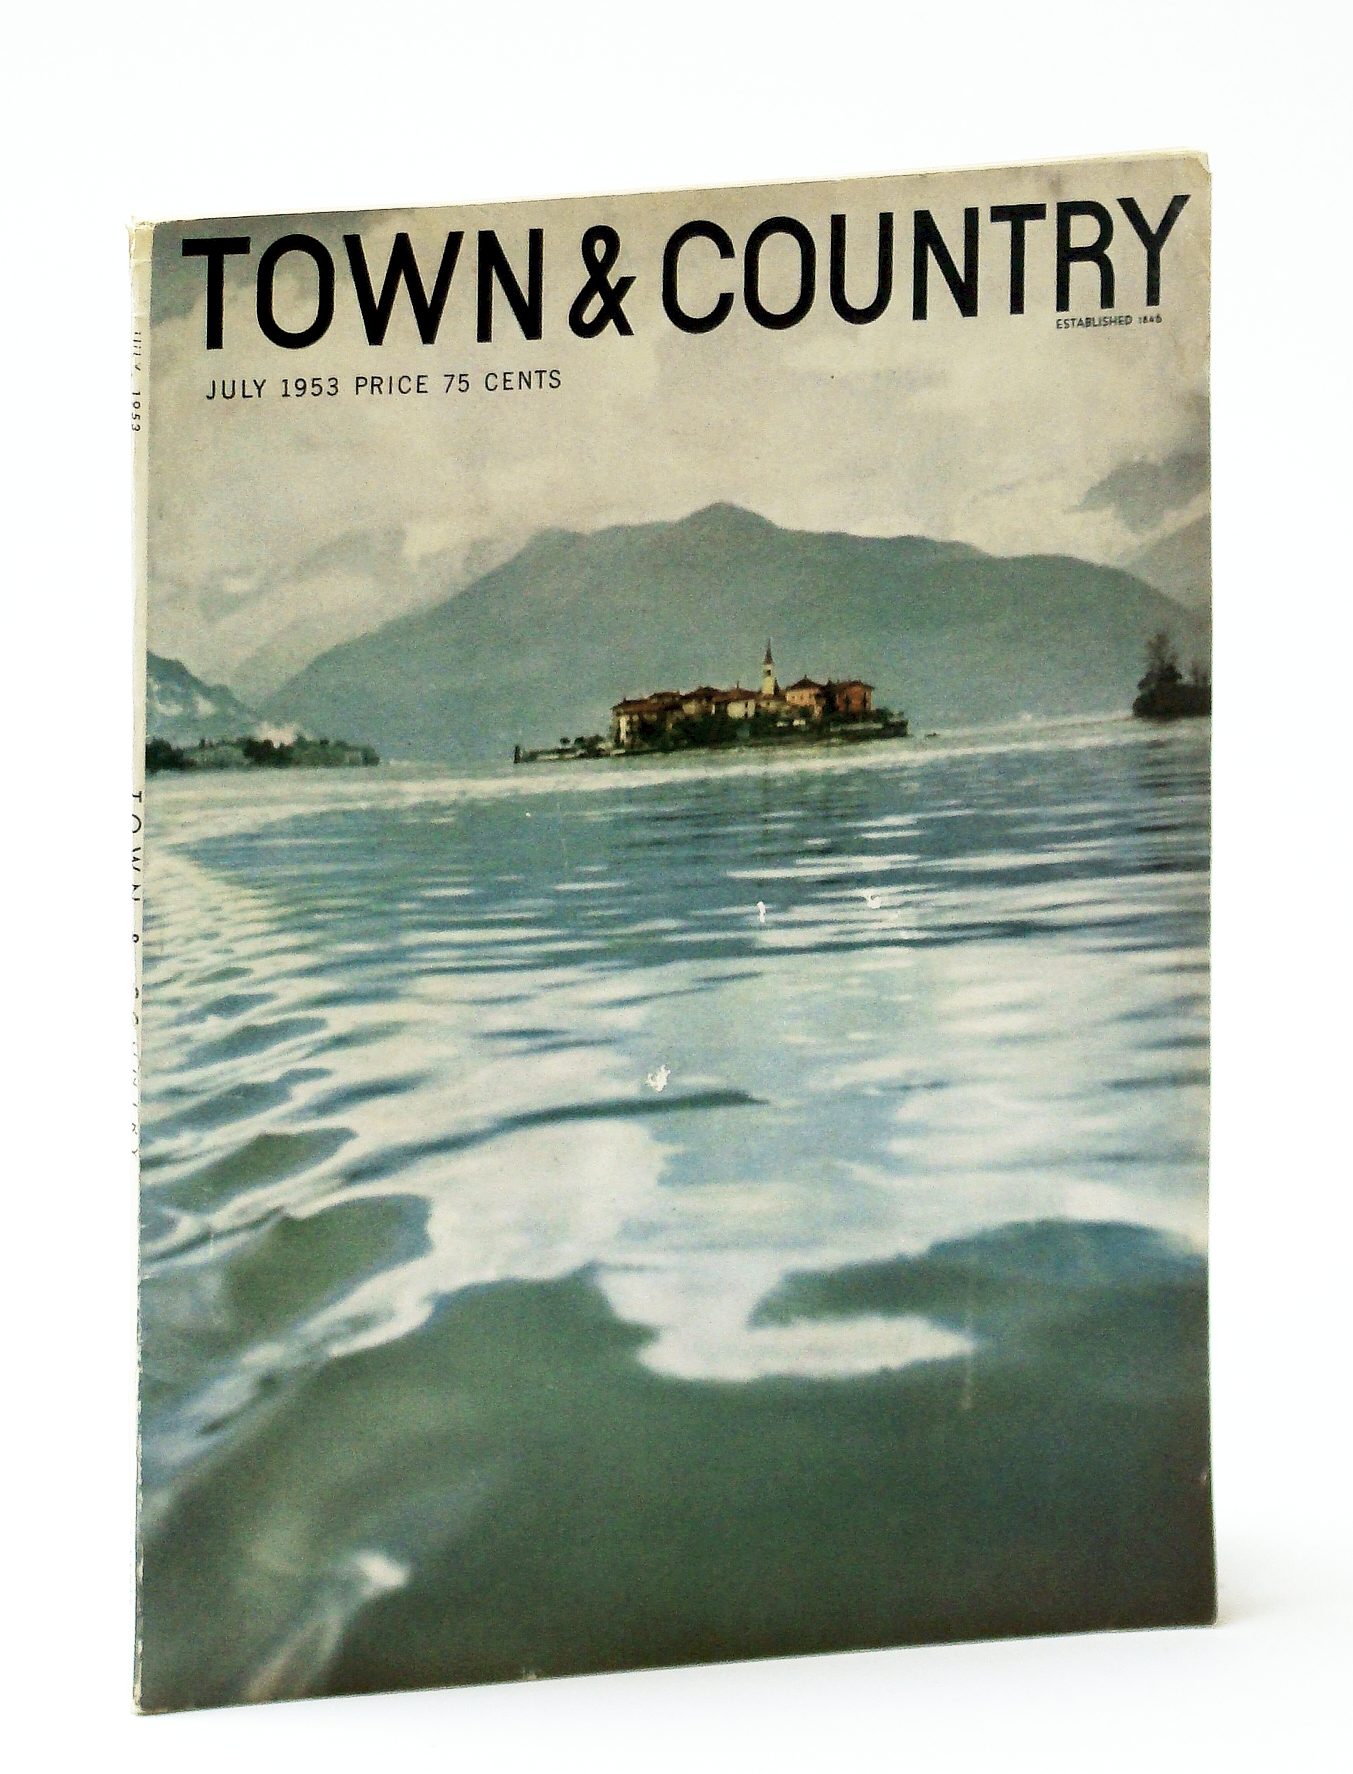 Image for Town & Country Magazine, July 1953, Vol. 107, No. 4370 - Fur Fashions